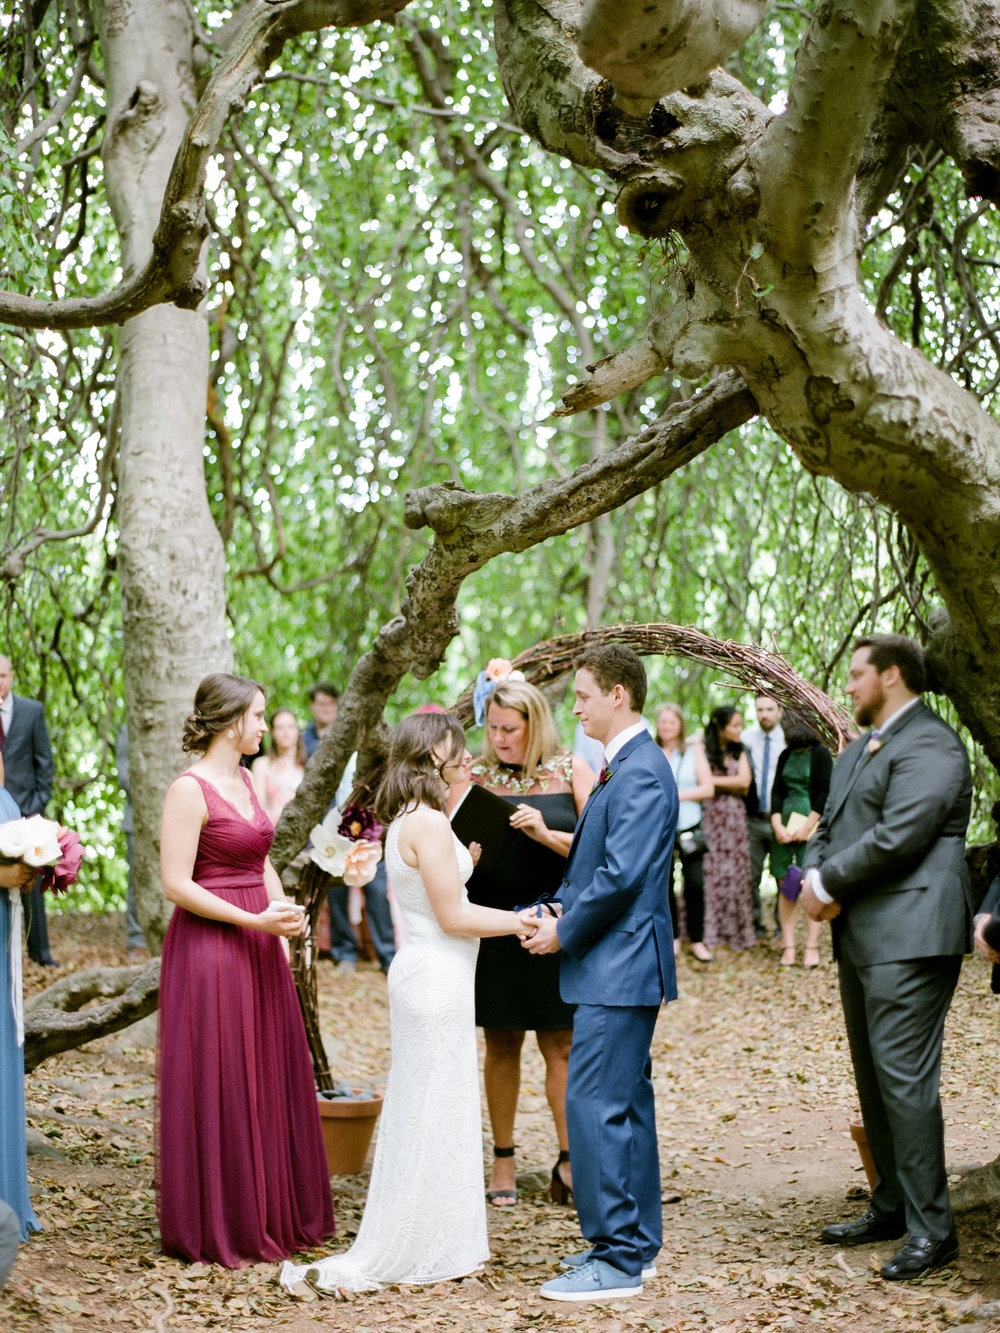 Married beneath a tree in CT